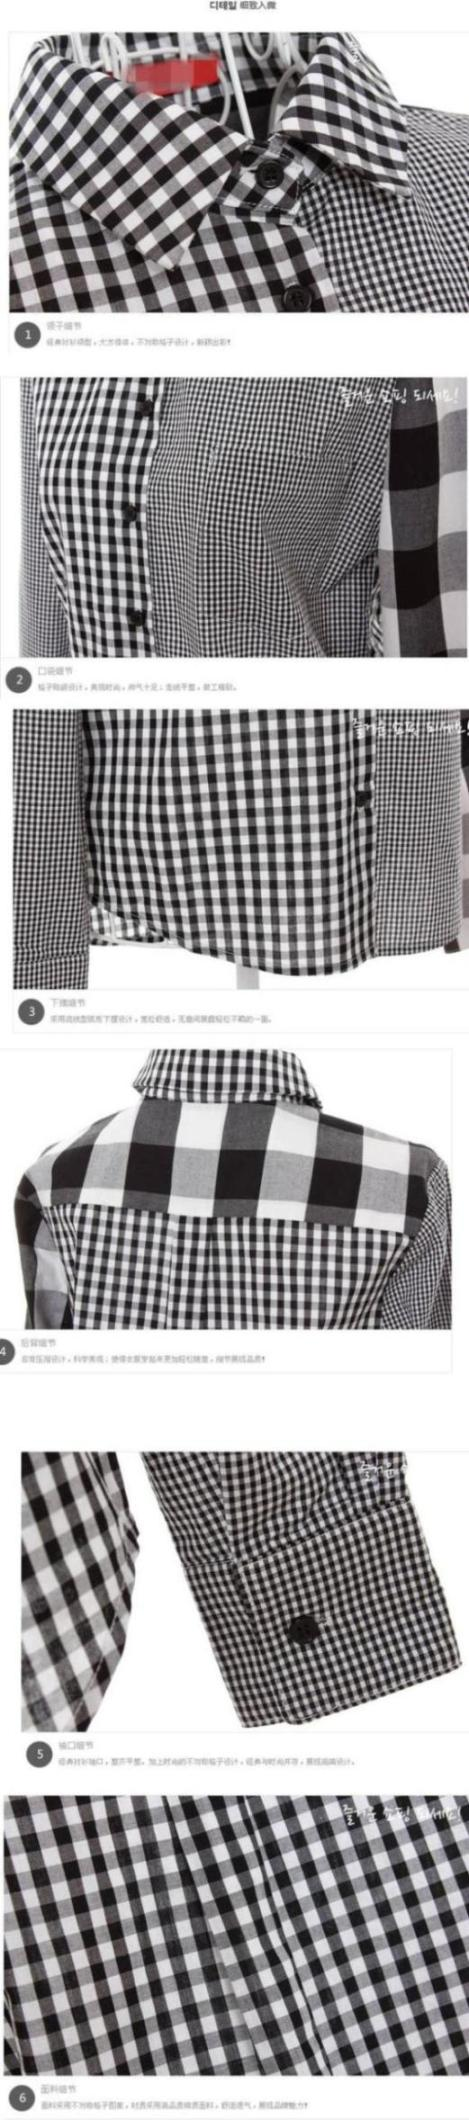 f4267322af7 Discount during the spring and autumn outfit shirt blouse ...